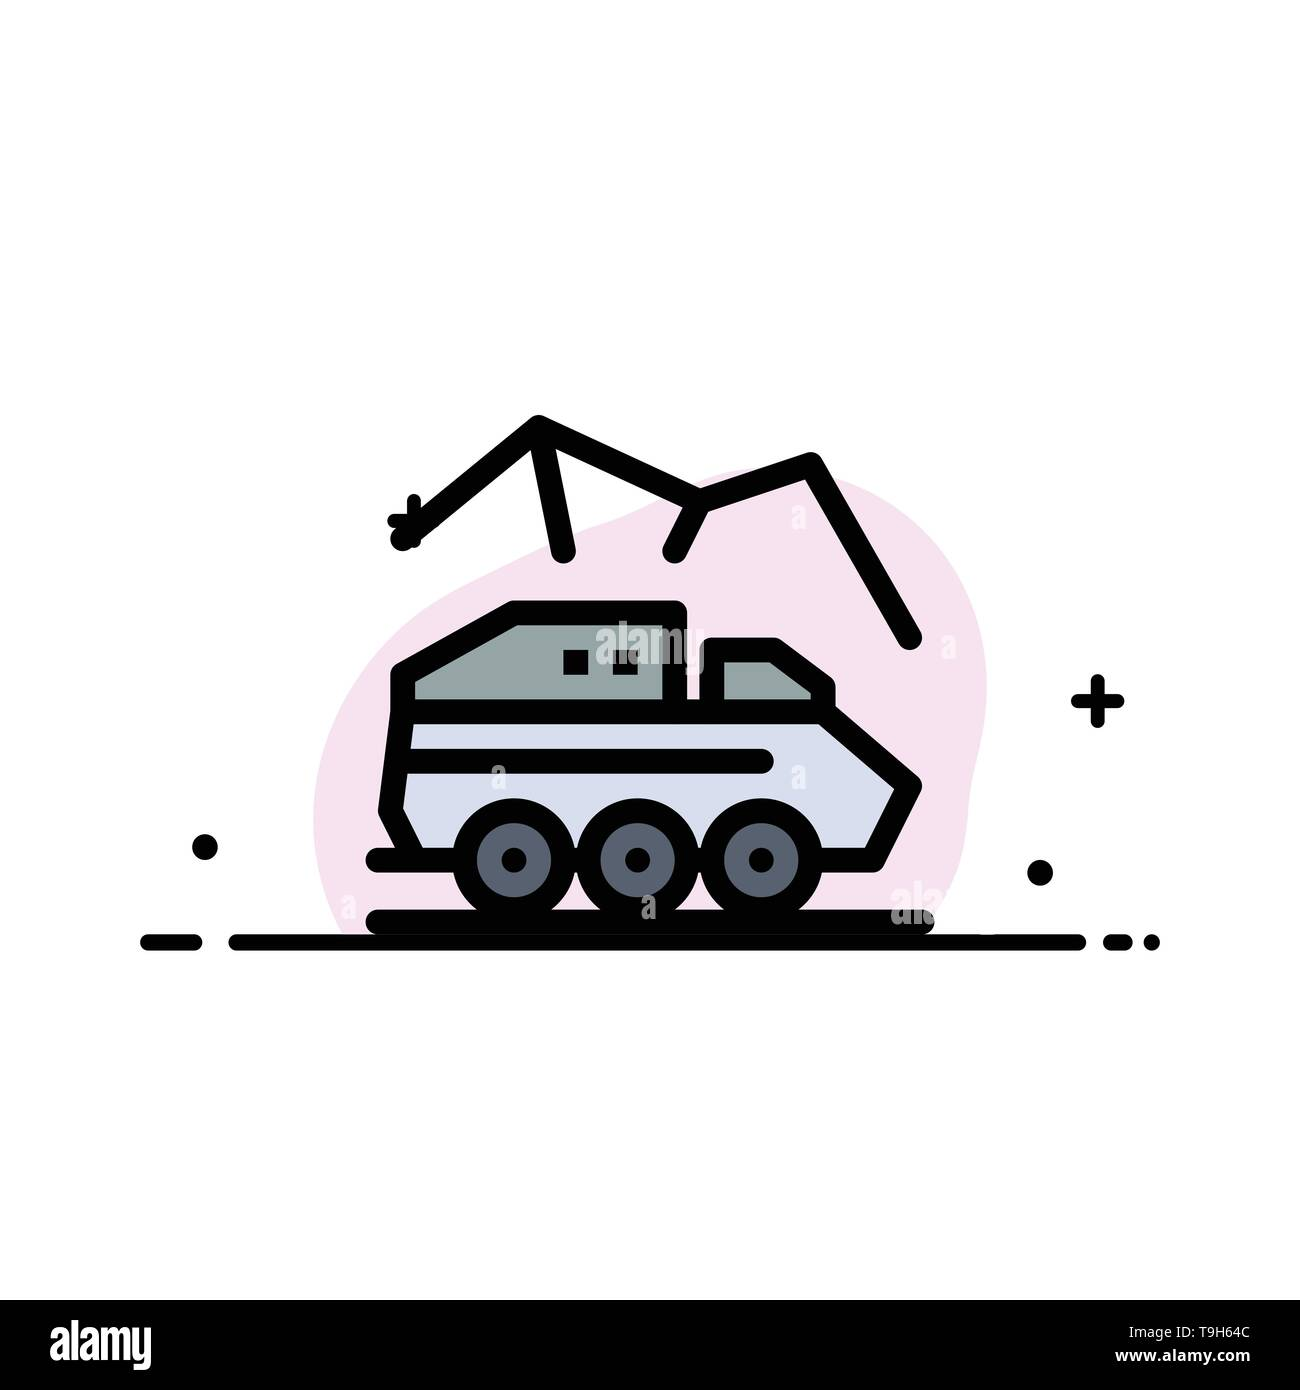 Exploration, Planet, Rover, Surface, Transport  Business Flat Line Filled Icon Vector Banner Template - Stock Image